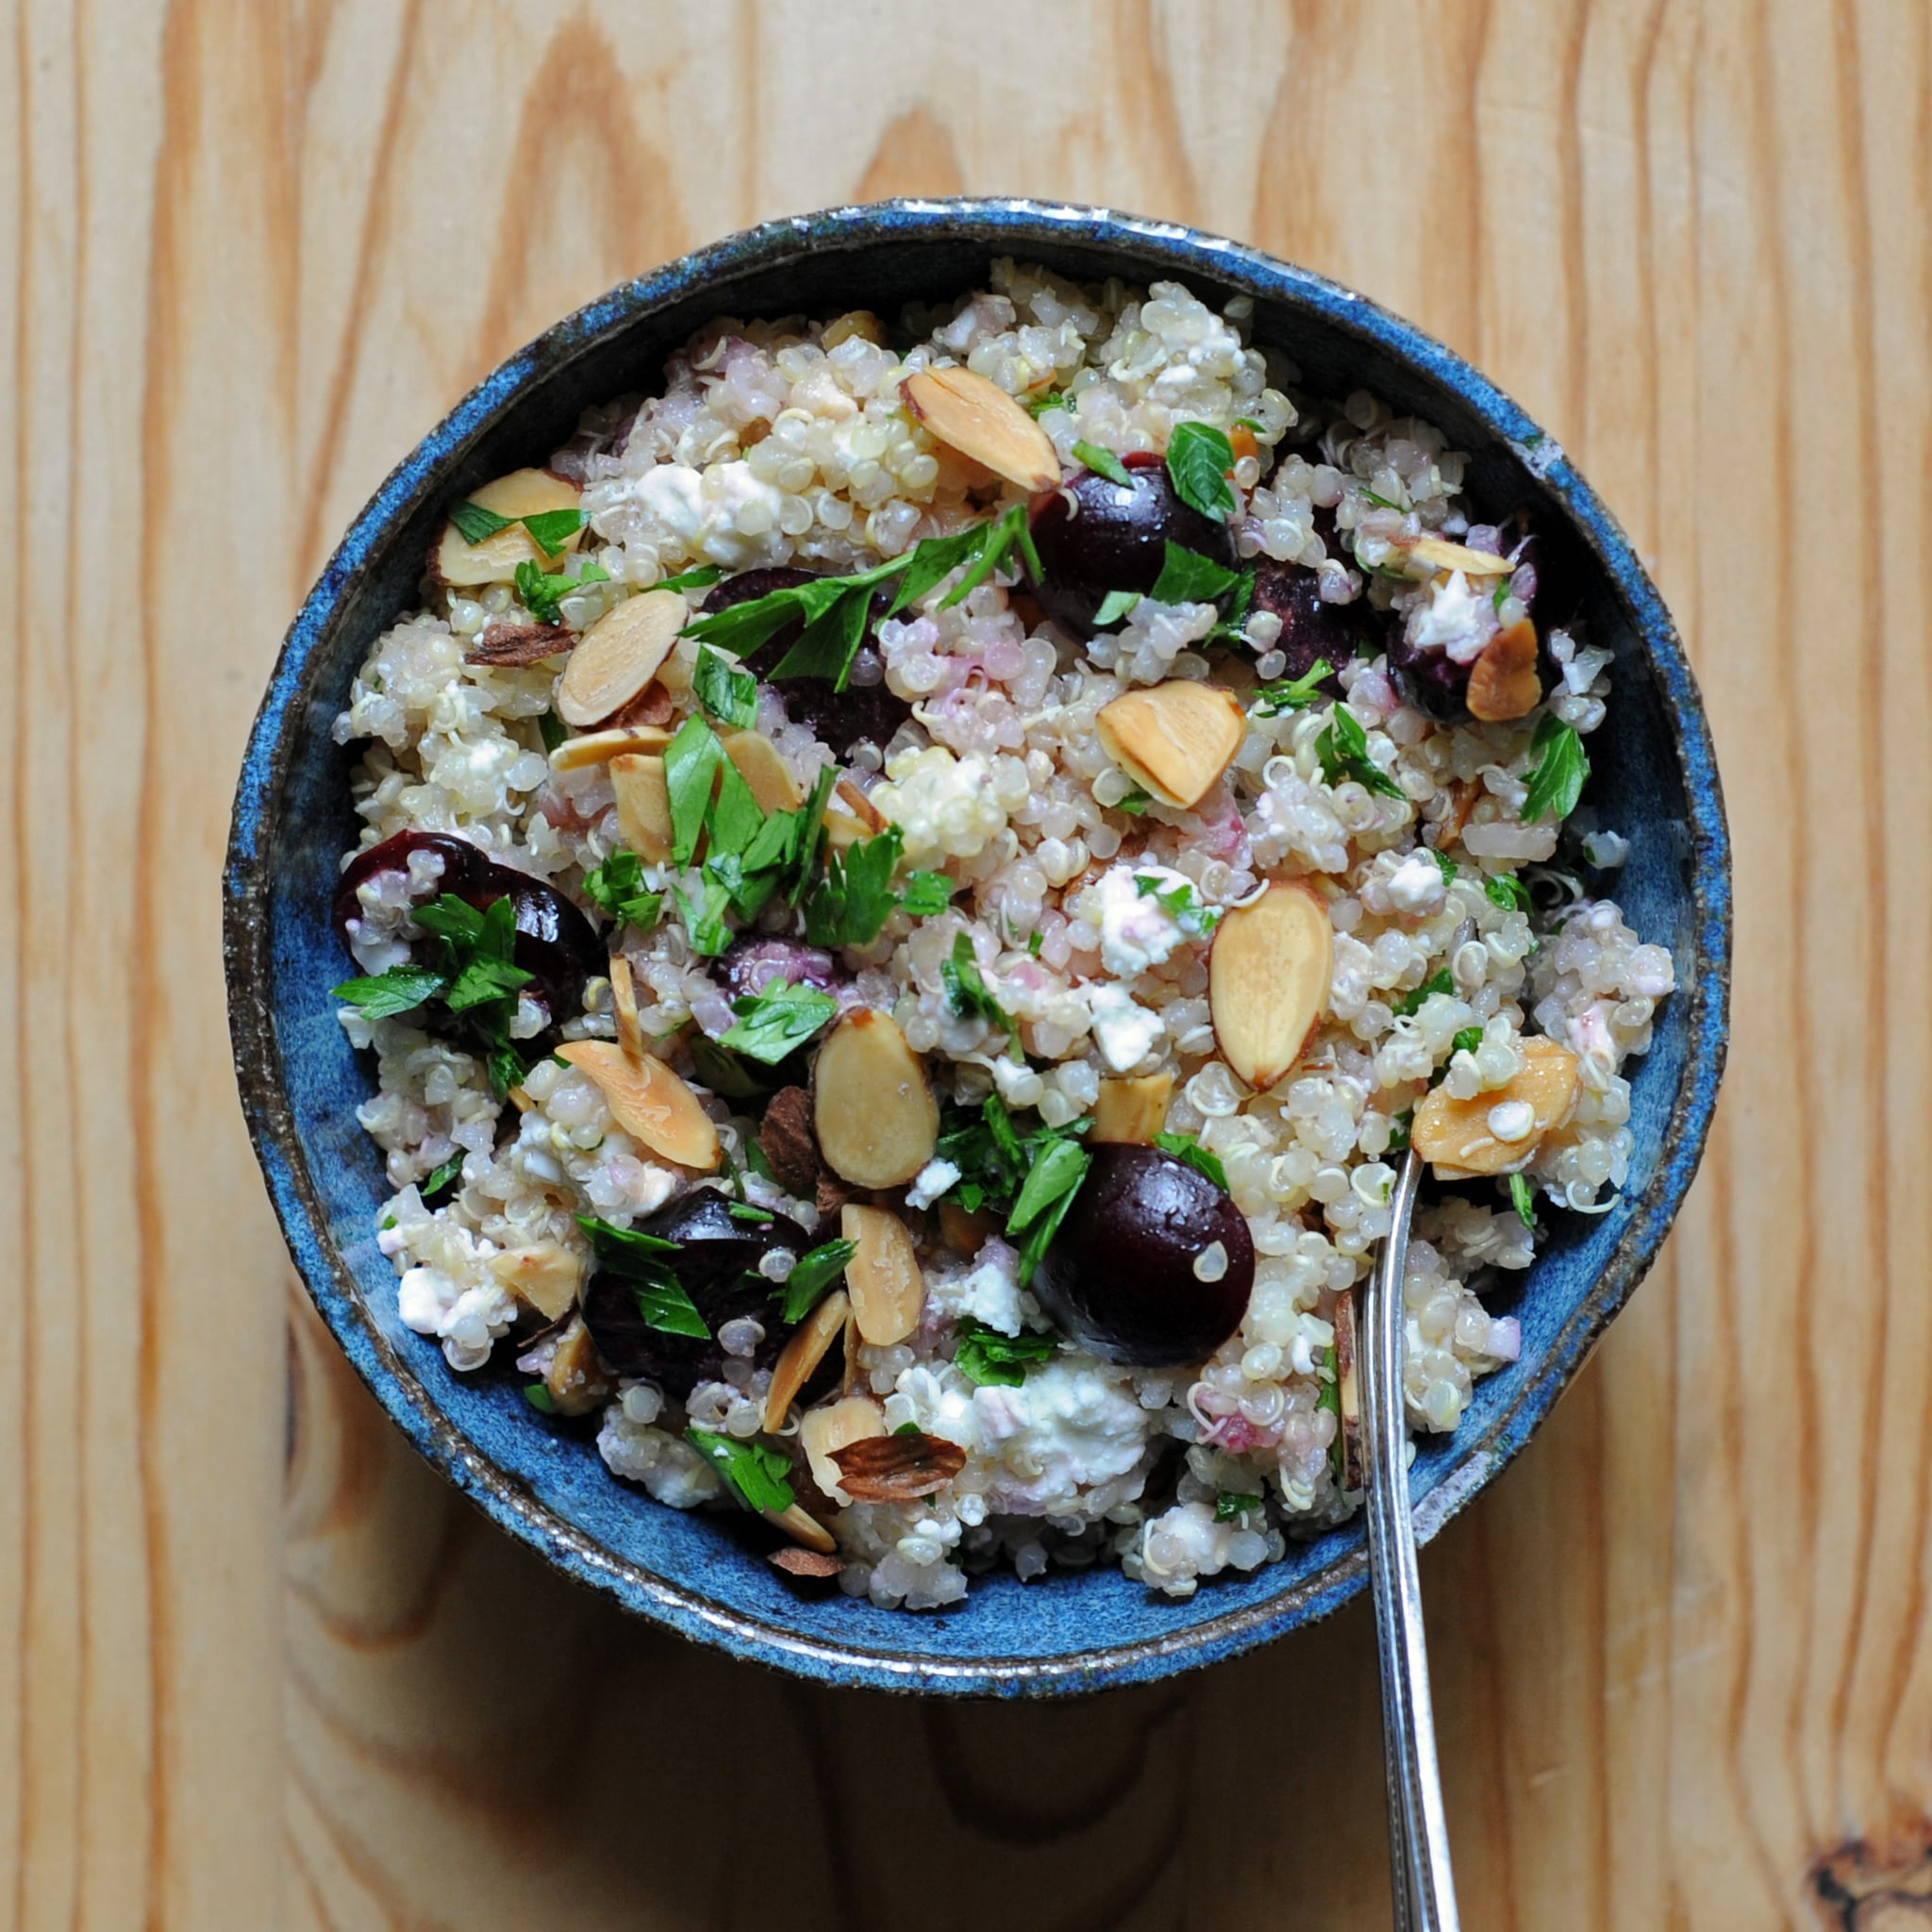 What to Make: Quinoa Salad With Cherries and Feta